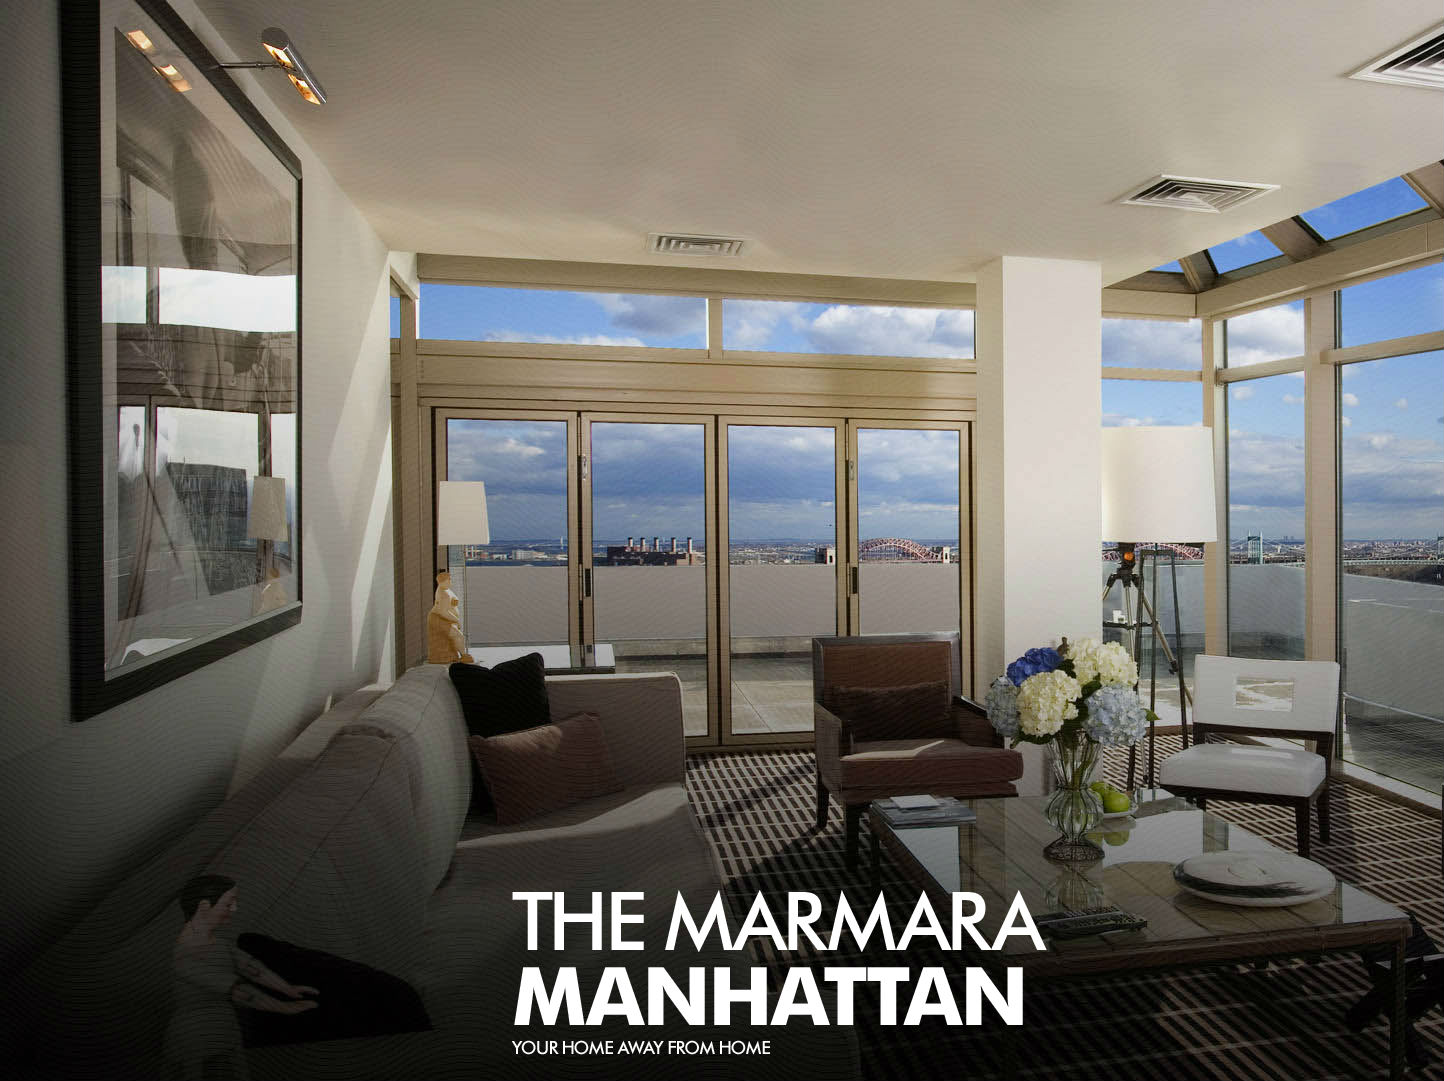 The Marmara Manhattan'da New York'u Yaşayın